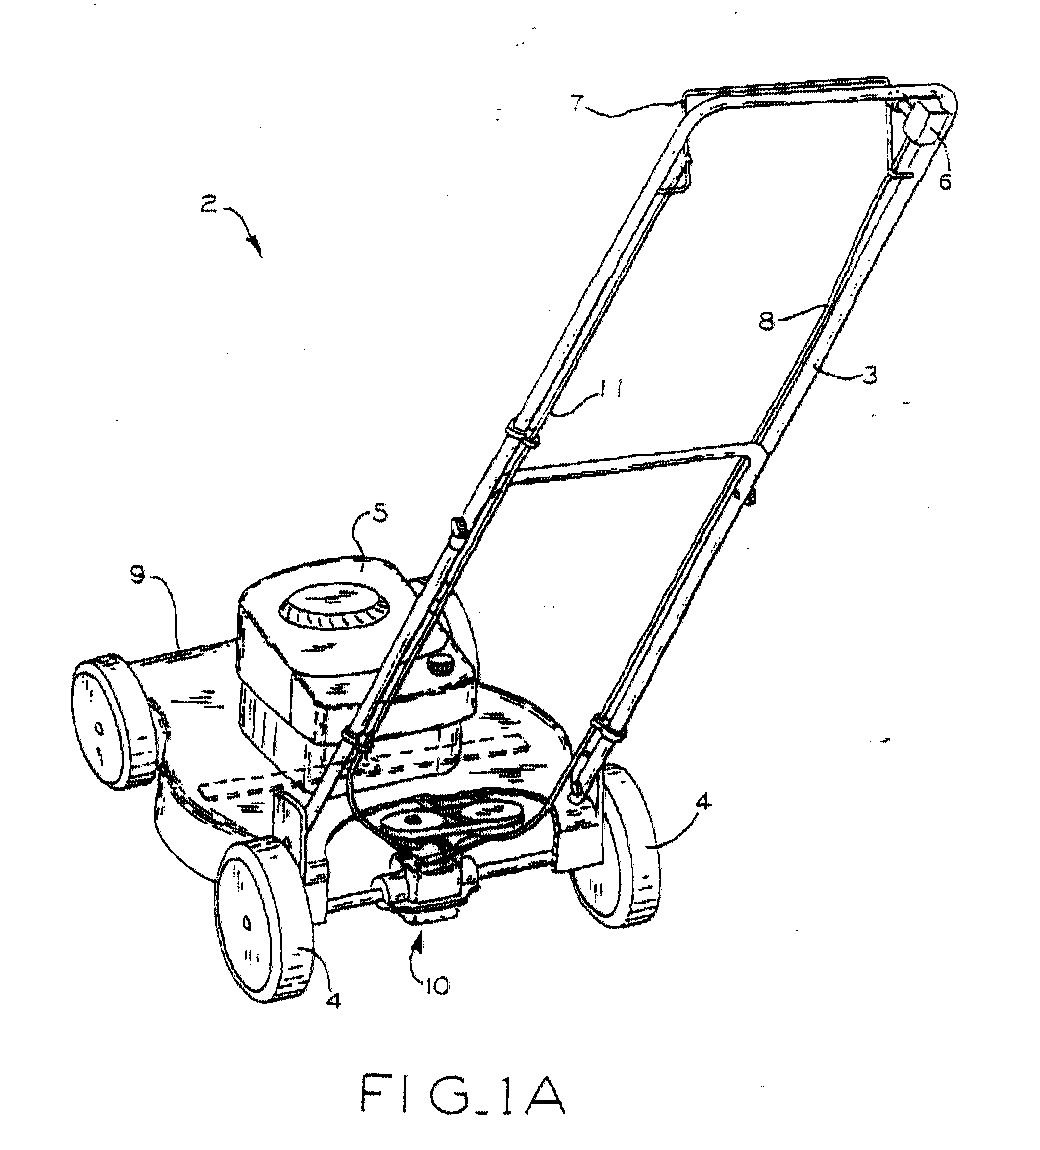 Ep1172583a2 Variable Speed Transmission And Electronic Engine Mount Diagram Parts List For Murray Walkbehindlawnmower Figure 00000001